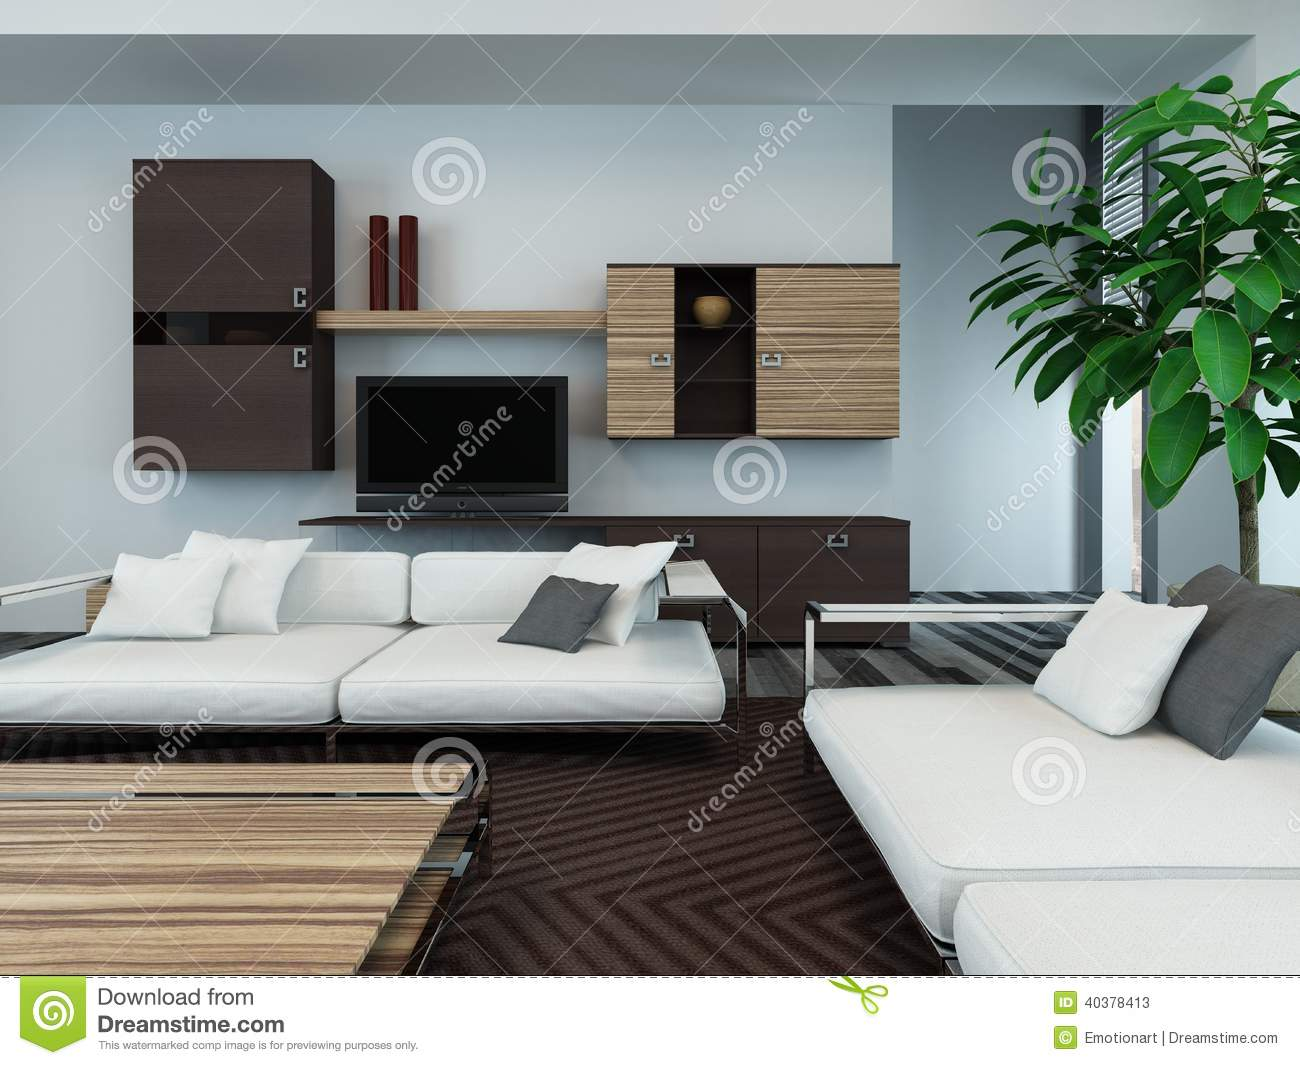 Superb img of Modern Living Room Interior With Wooden Cabinets Stock Photo Image  with #306B31 color and 1300x1065 pixels